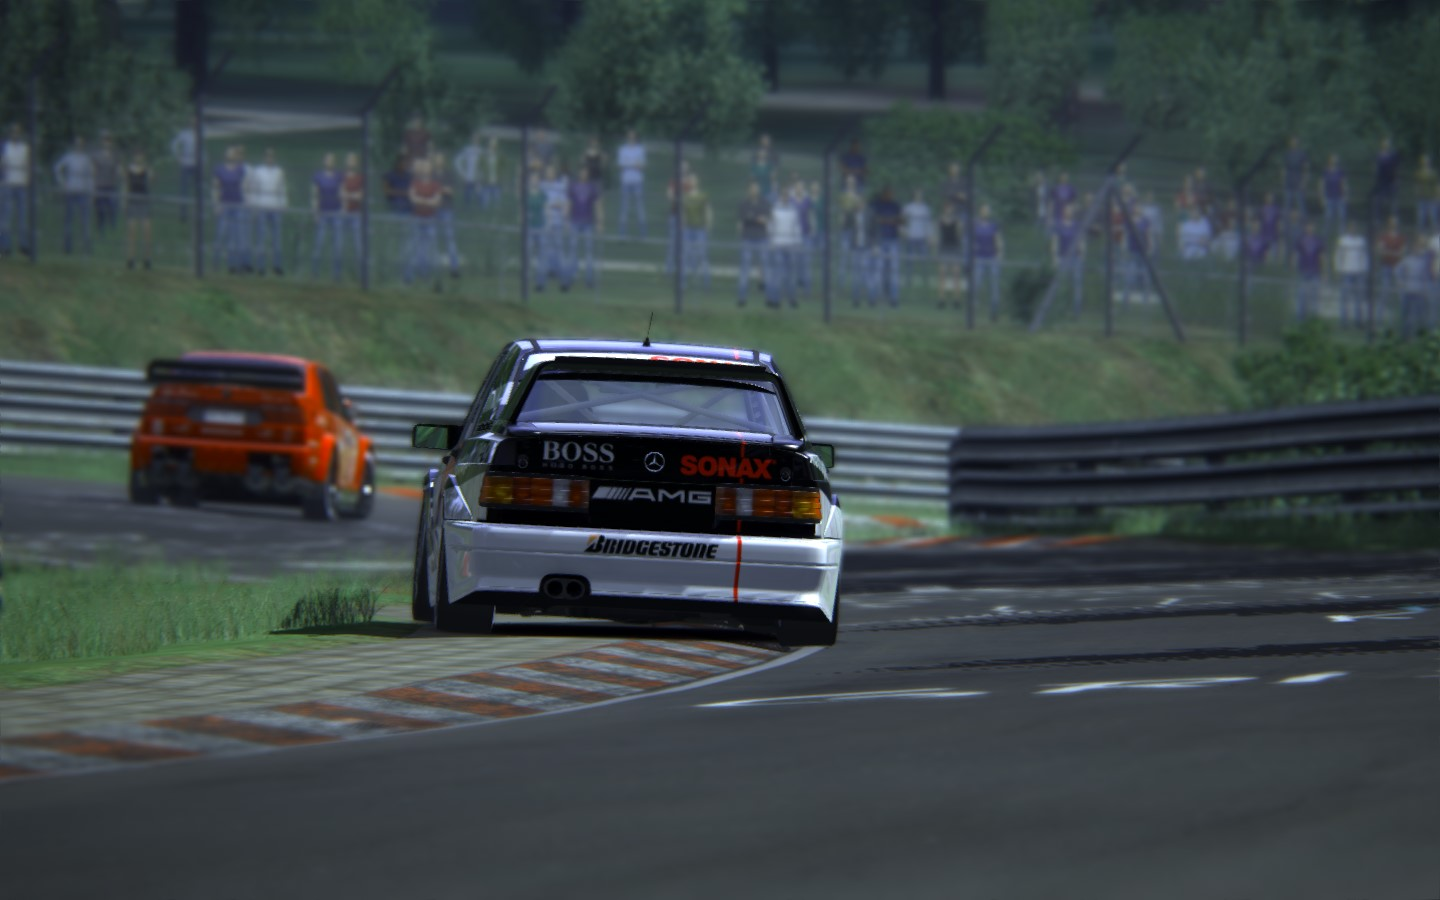 Screenshot_ks_mercedes_190_evo2_ks_nordschleife_28-3-118-0-45-25.jpg